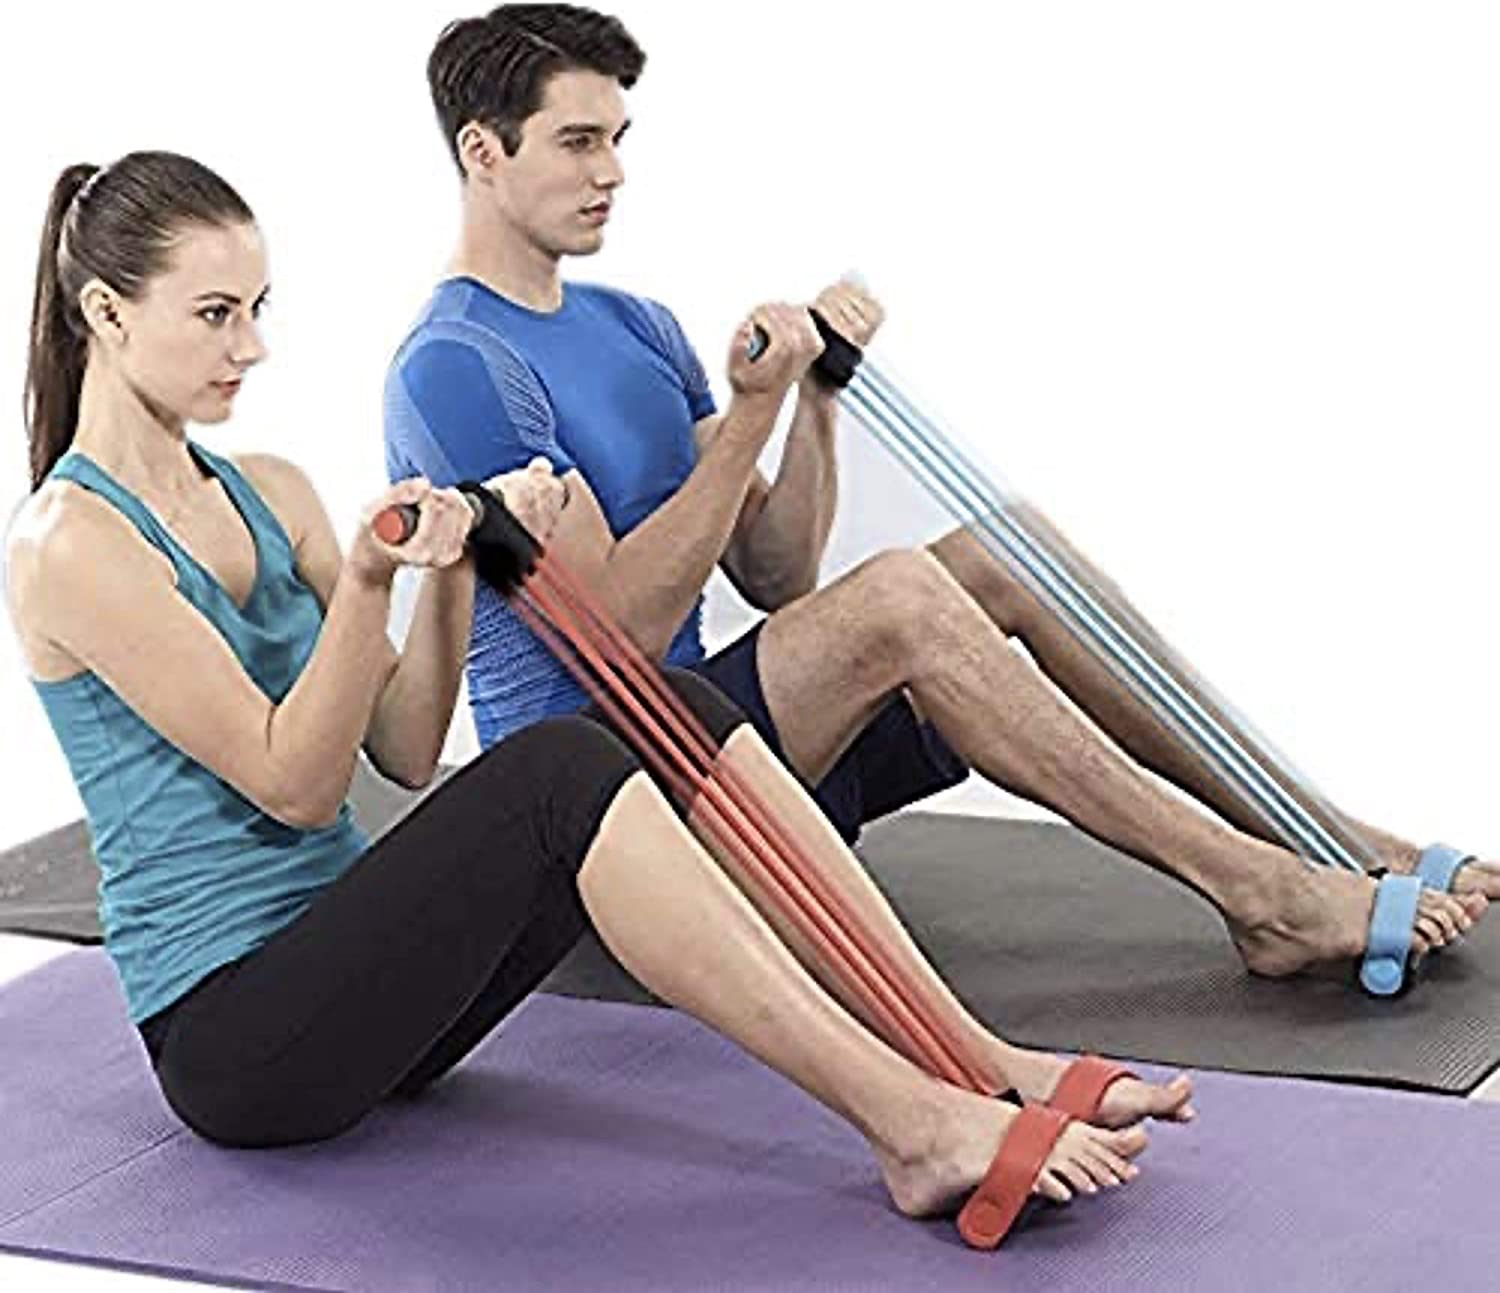 Max 85% OFF Abdominal Waist Leg Slimming Trainer Special sale item Upgrade 4-Tube Fitness Si